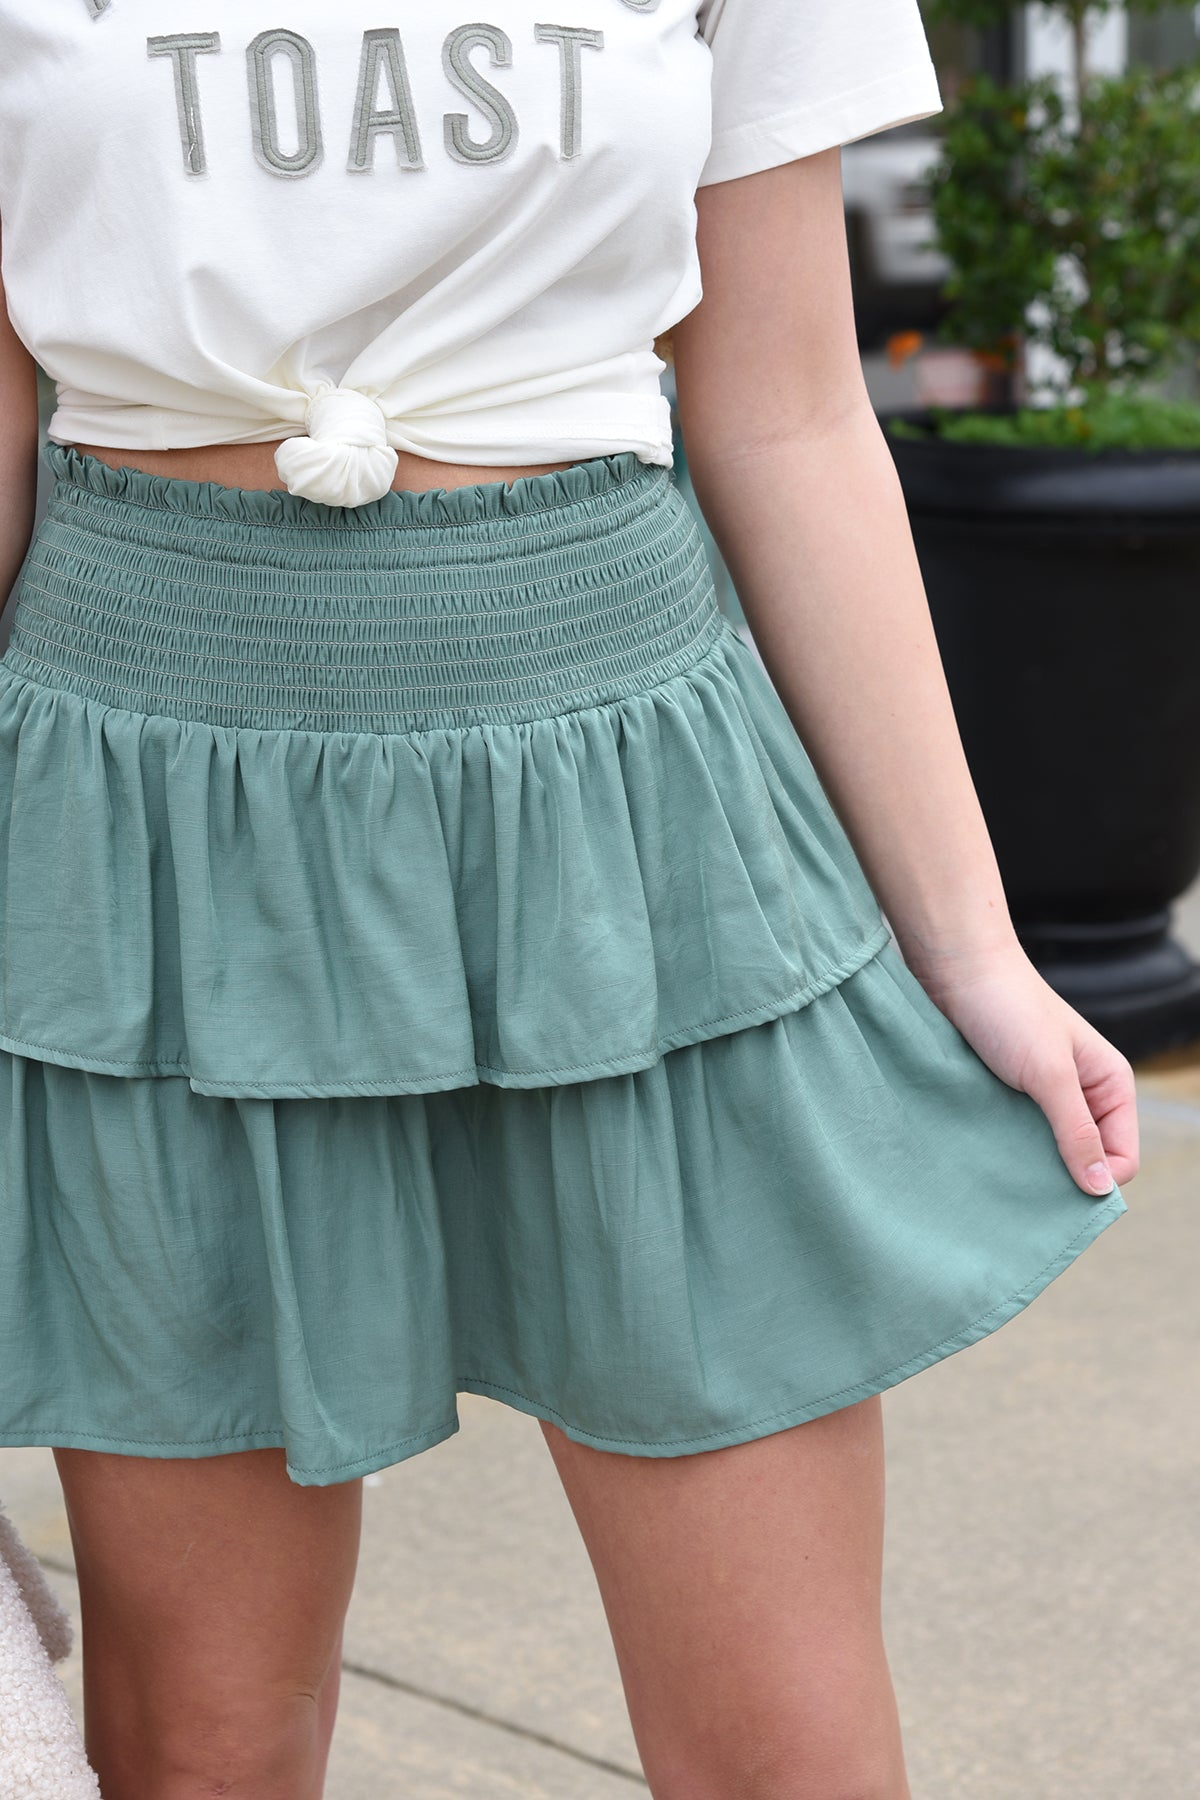 YOUR NEW FAVORITE SKIRT